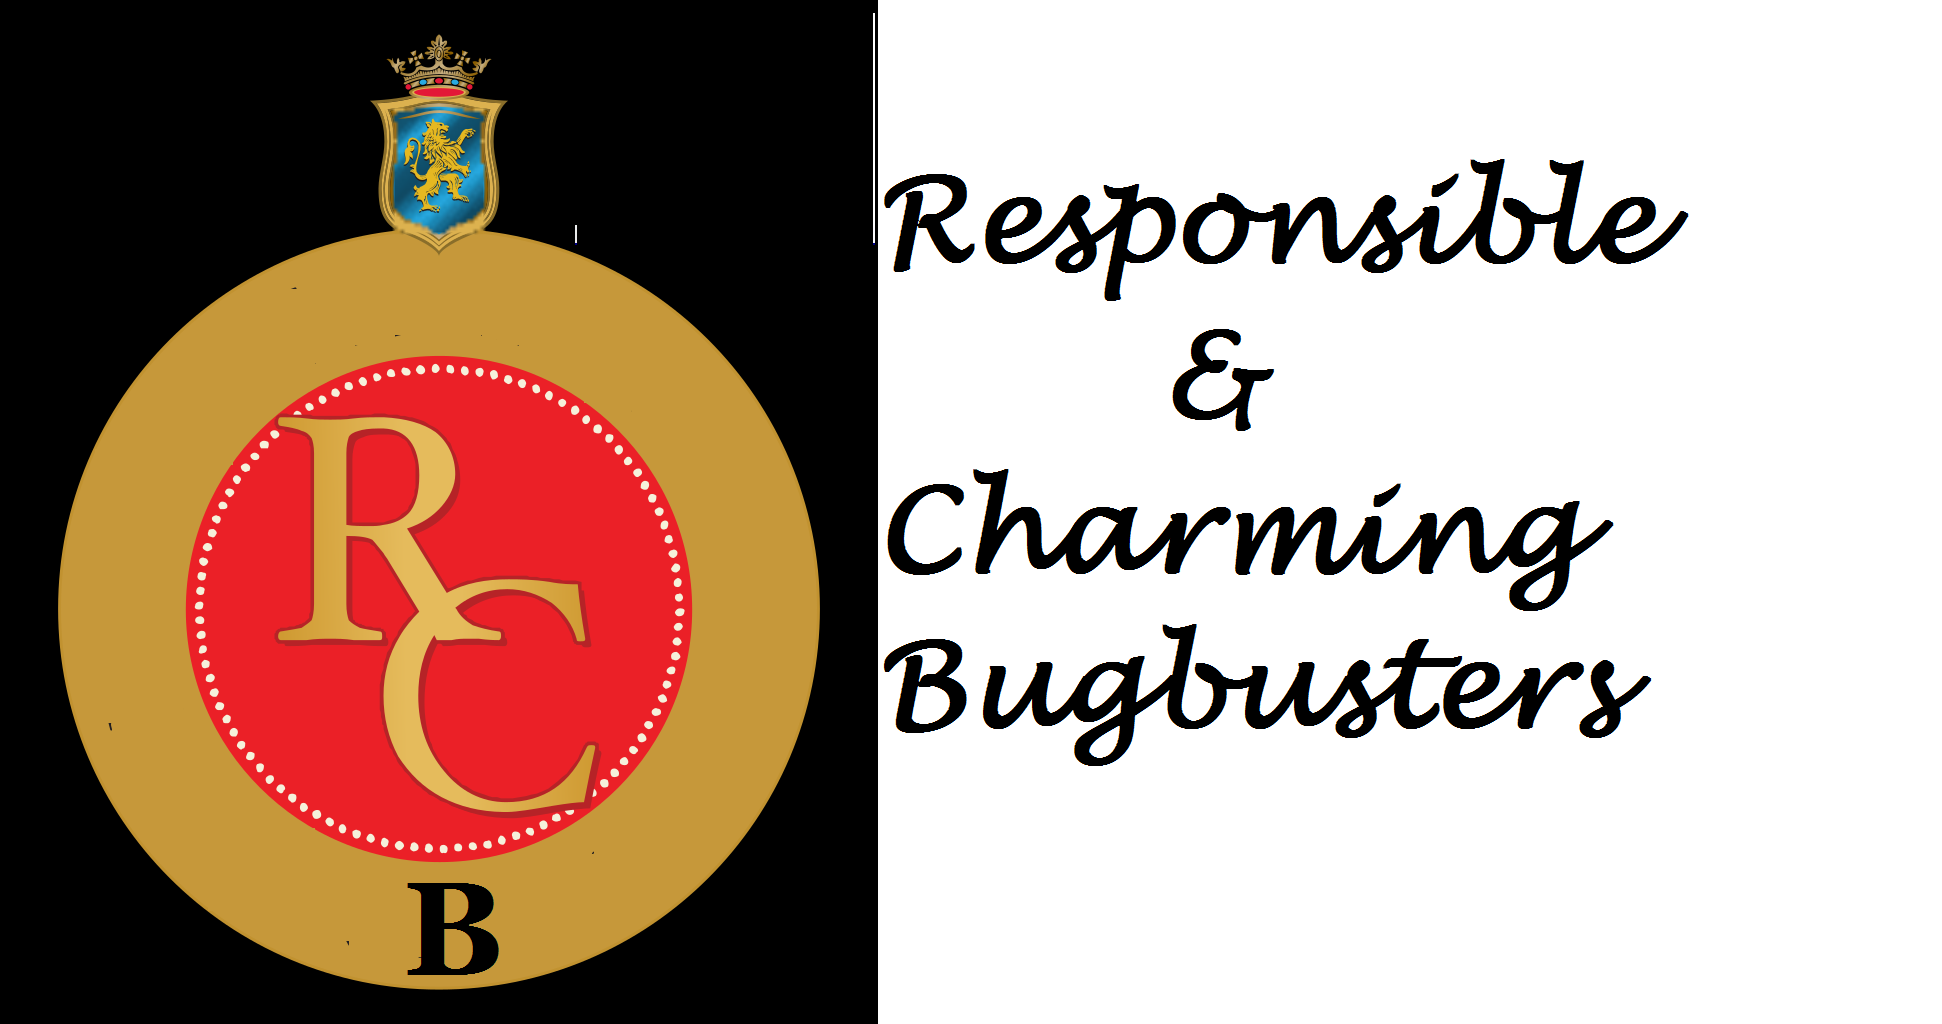 B5. Responsible & Charming BugBusters